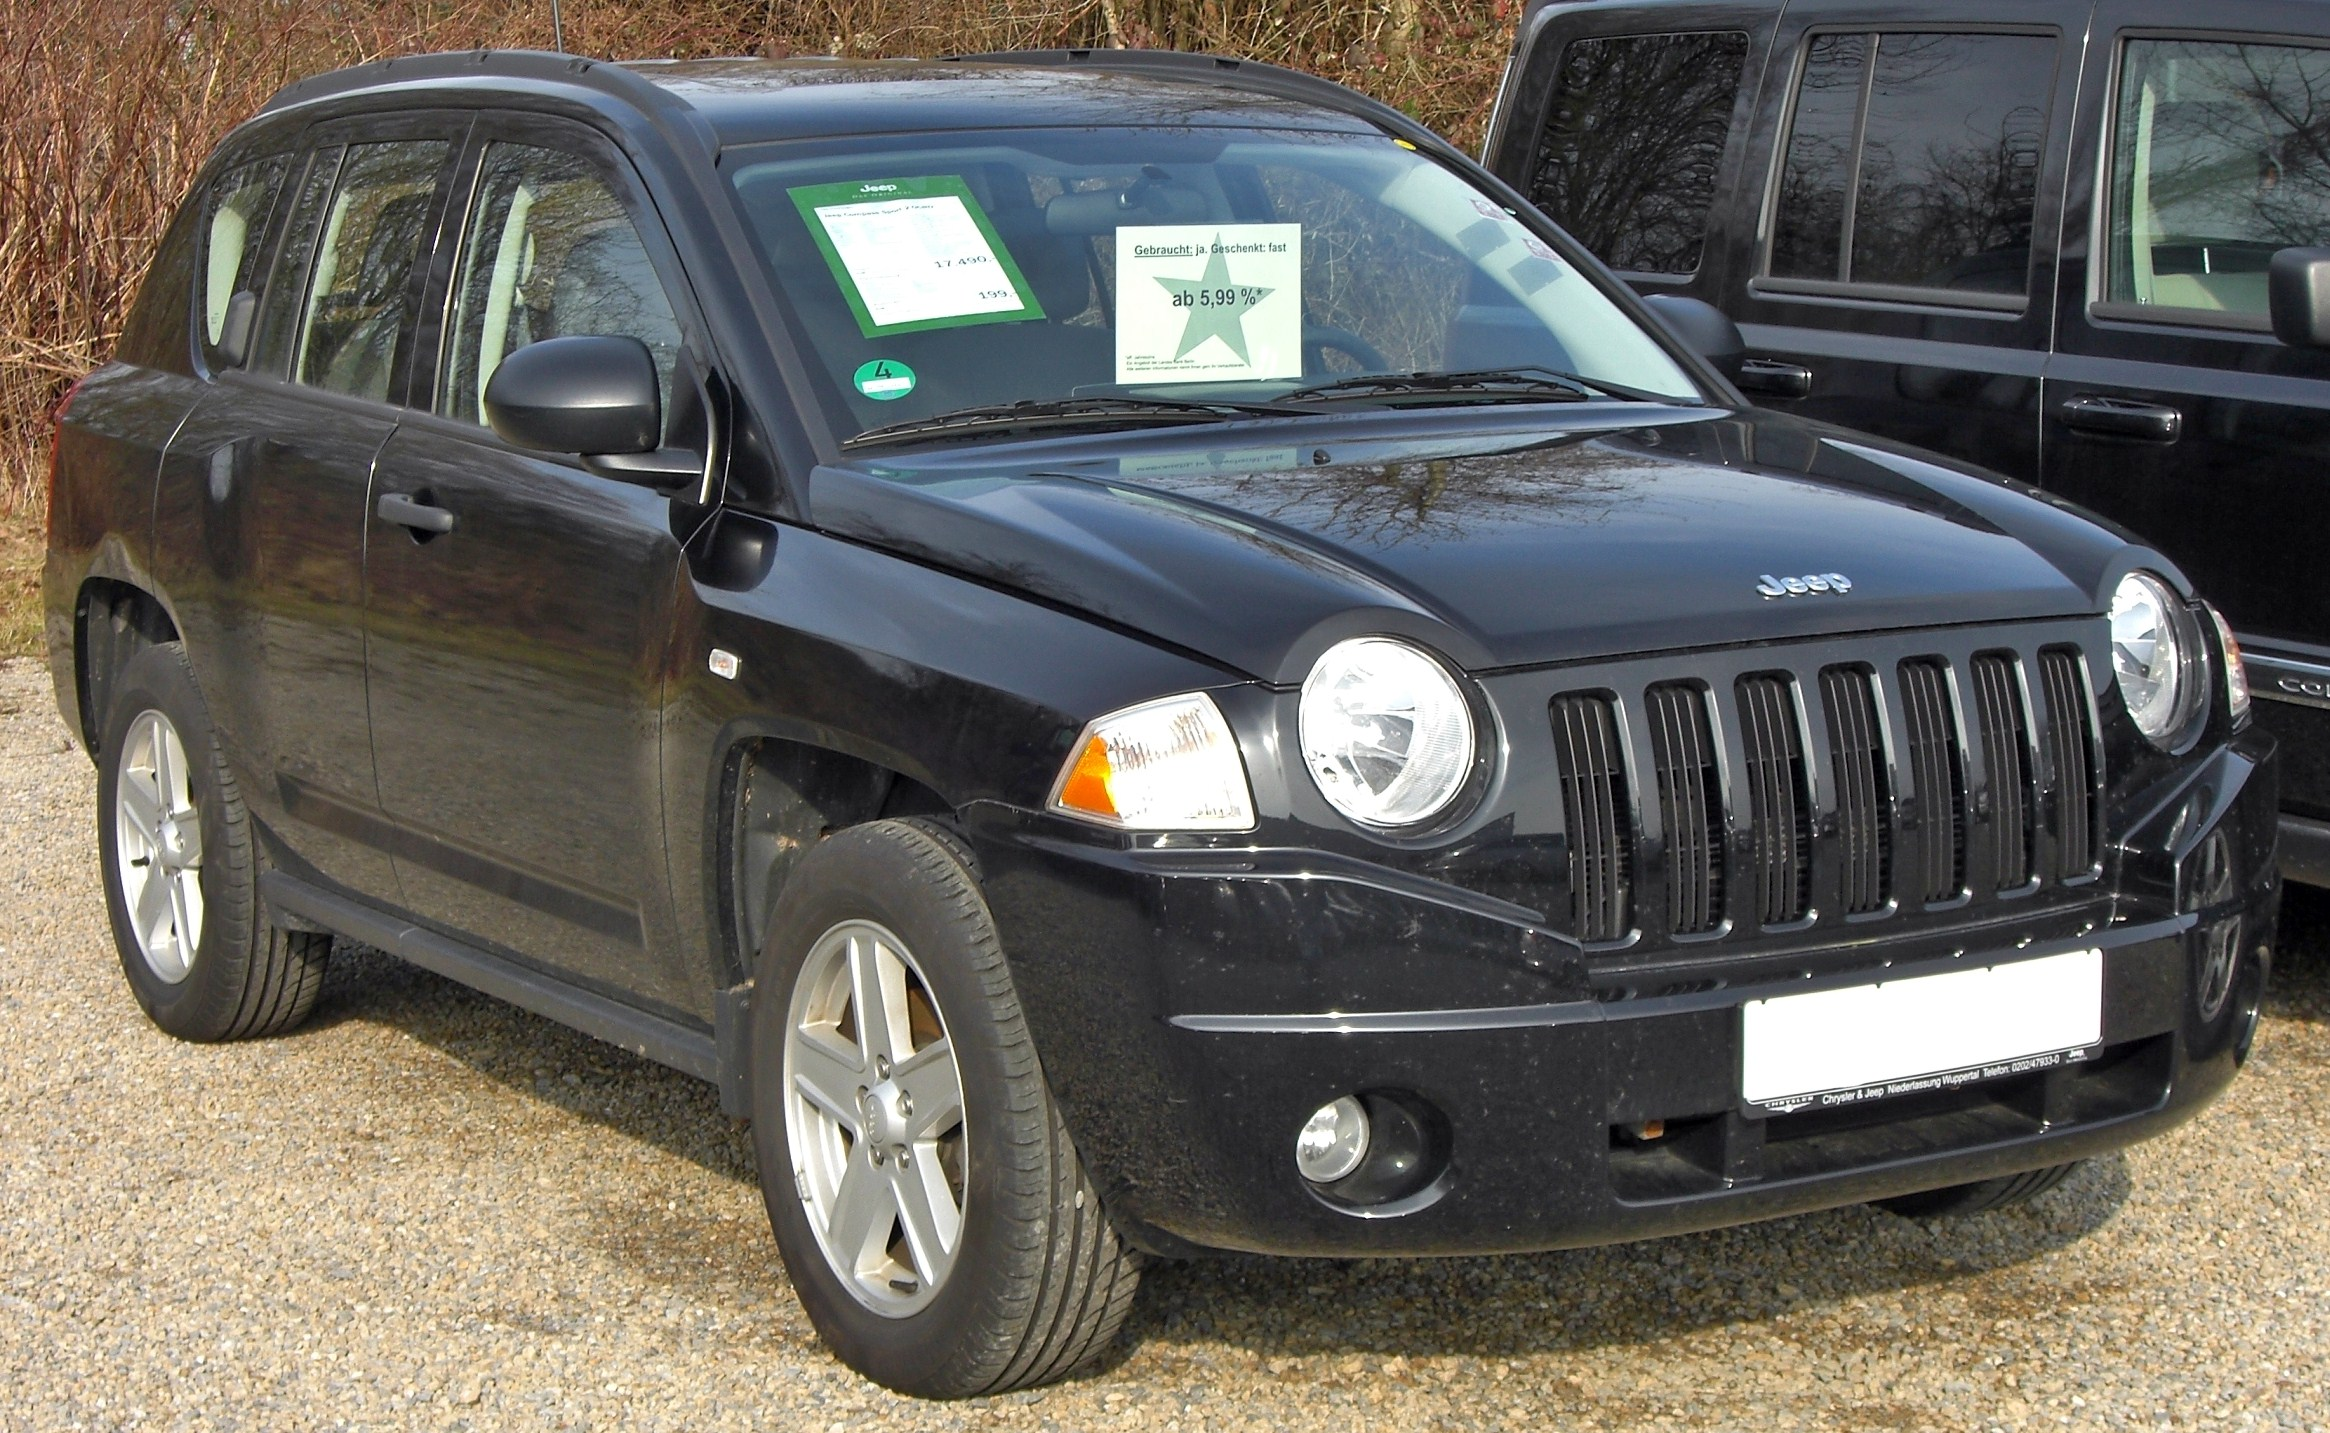 file jeep compass 20090301 wikimedia commons. Black Bedroom Furniture Sets. Home Design Ideas